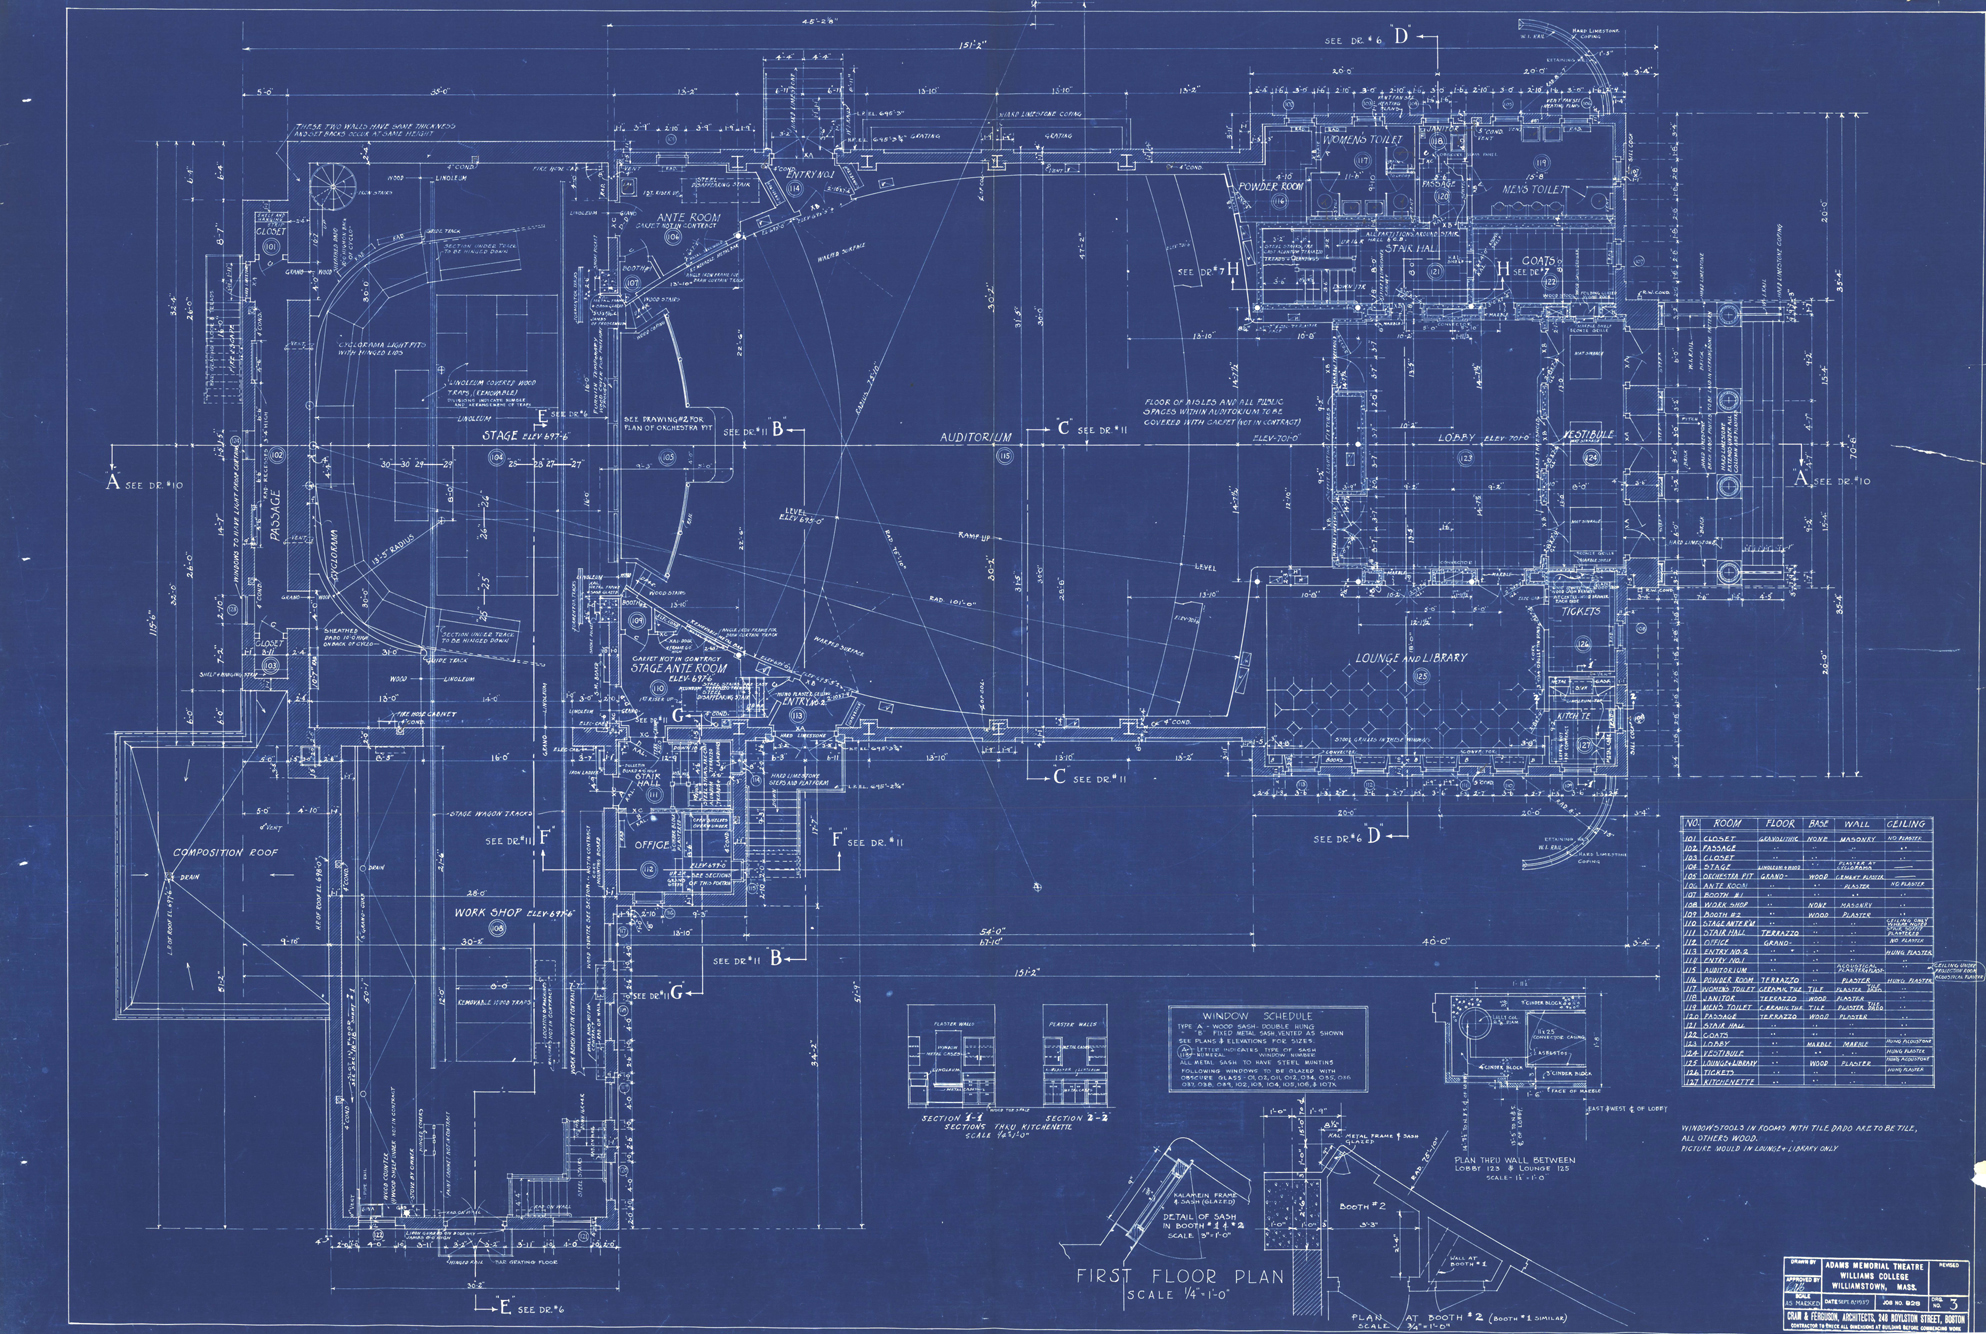 Blueprints for House blueprints